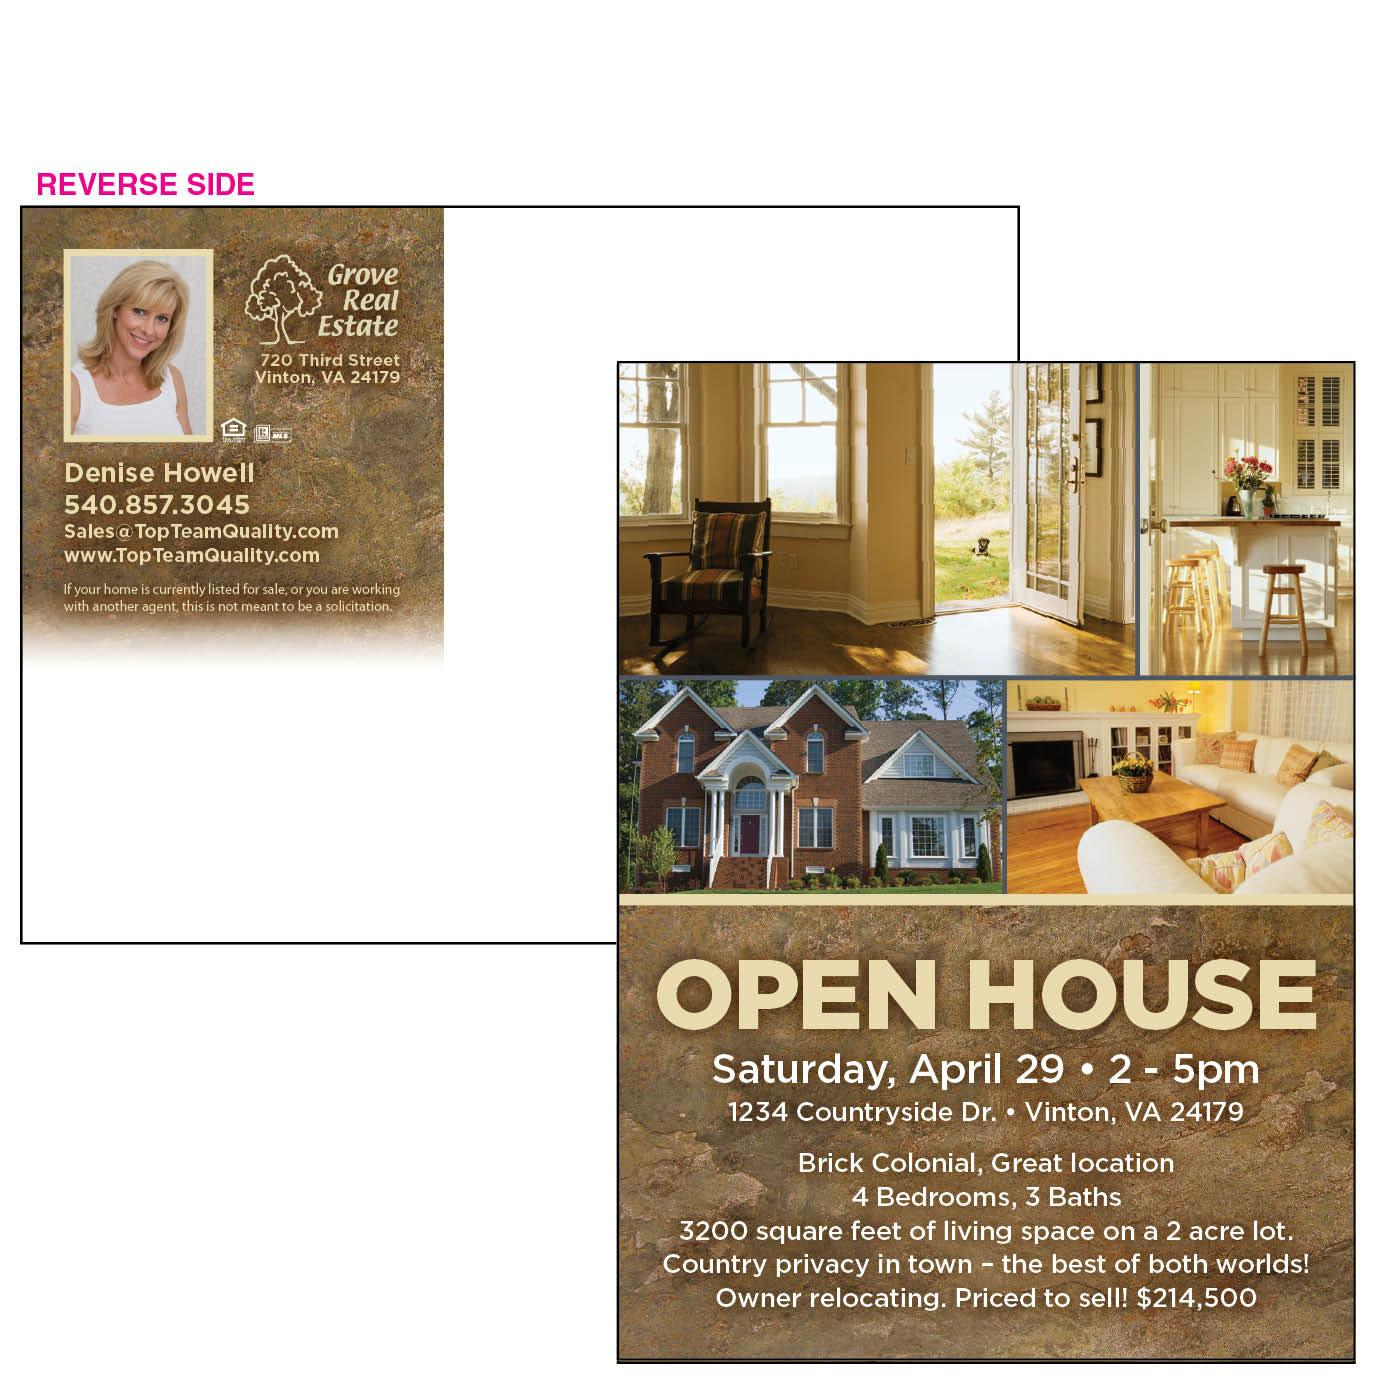 Postcard for Open House Event